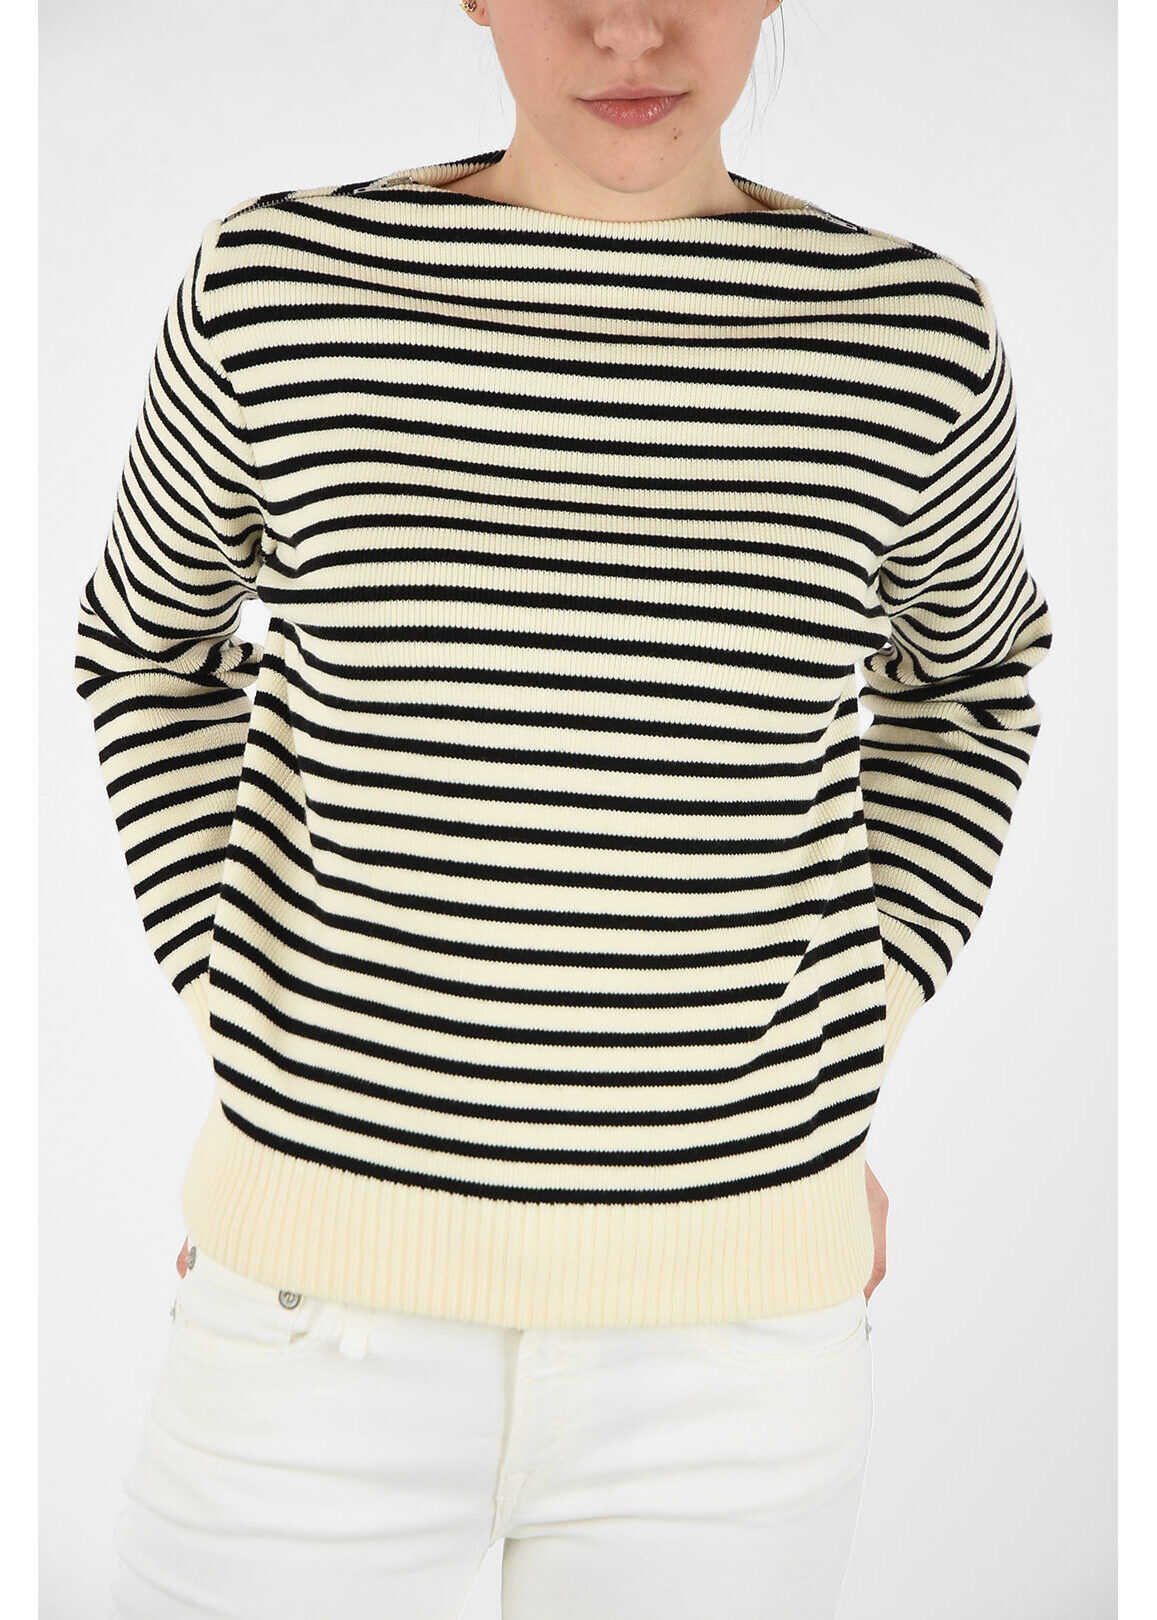 Céline wool striped sweater BLACK & WHITE